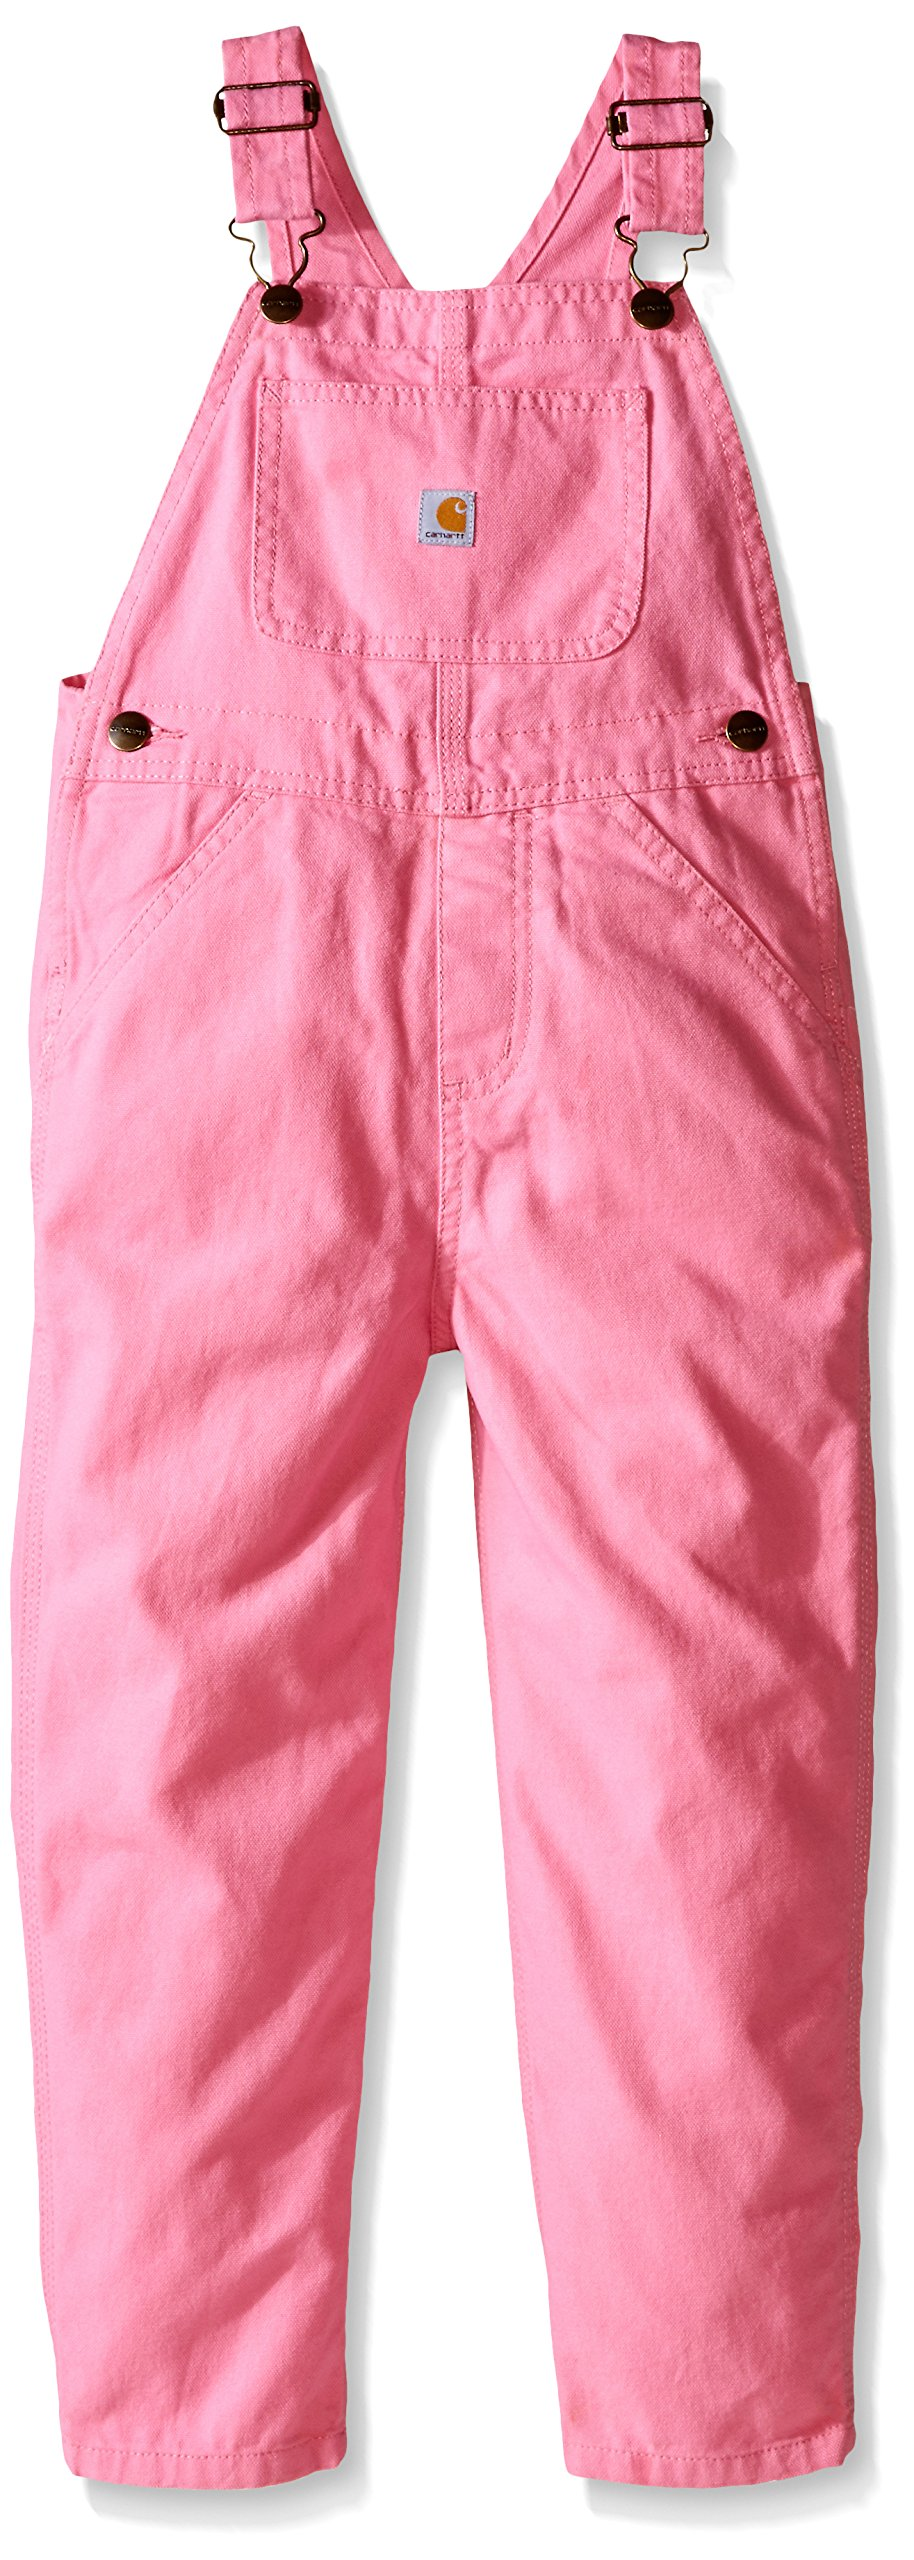 Carhartt Little Girls' Washed Miscrosanded Canvas Bib Overall, Pink, 5